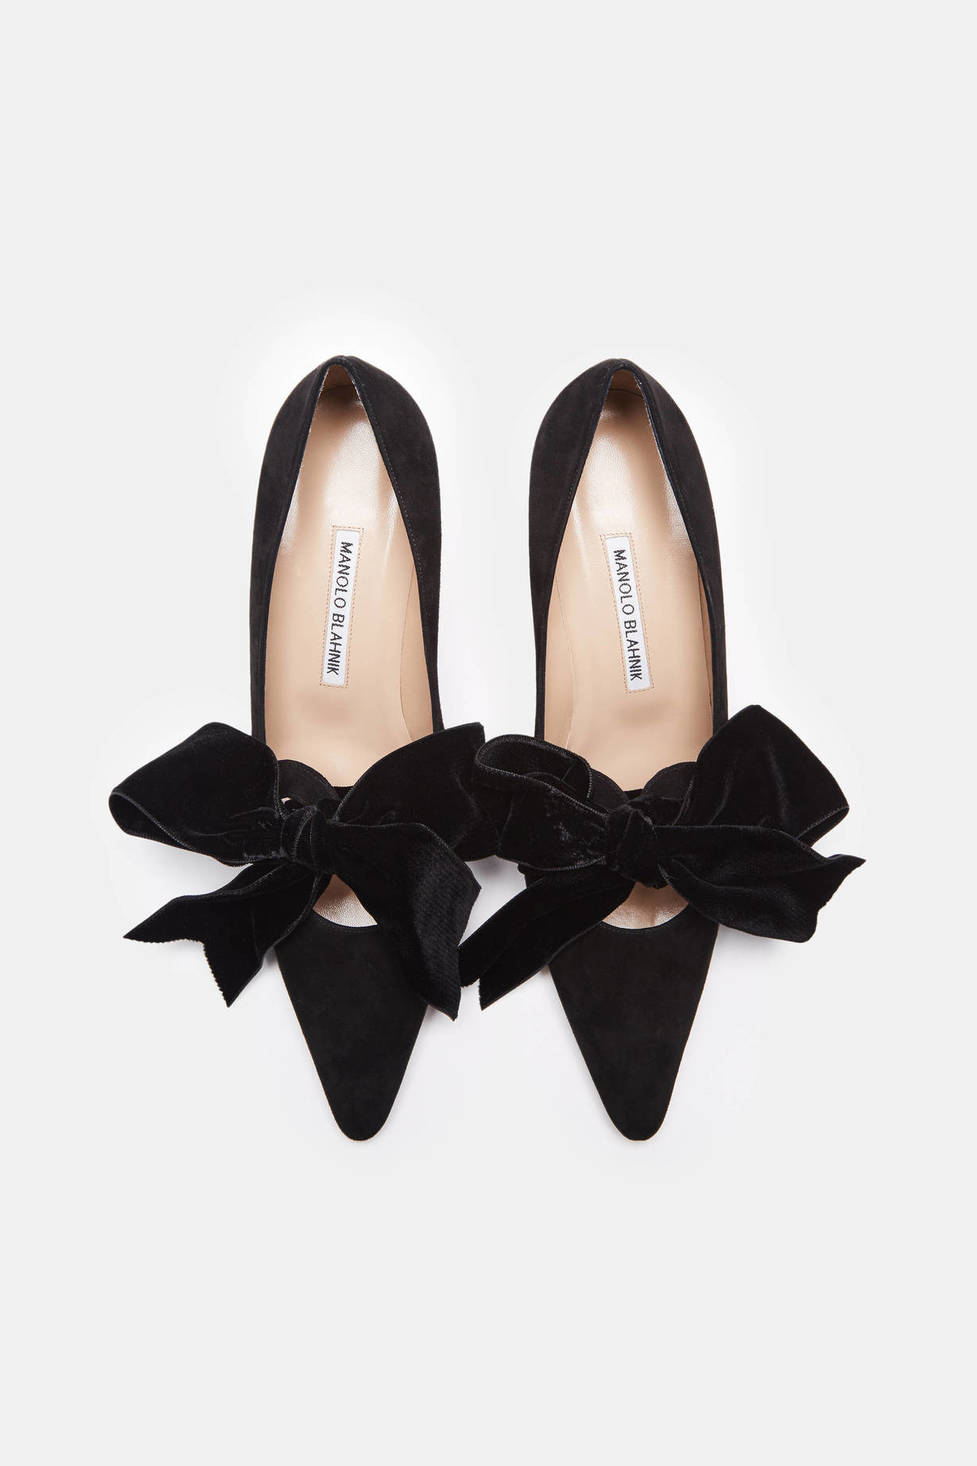 Manolo Blahnik Serba Pump in Black Suede/Velvet Bow $865